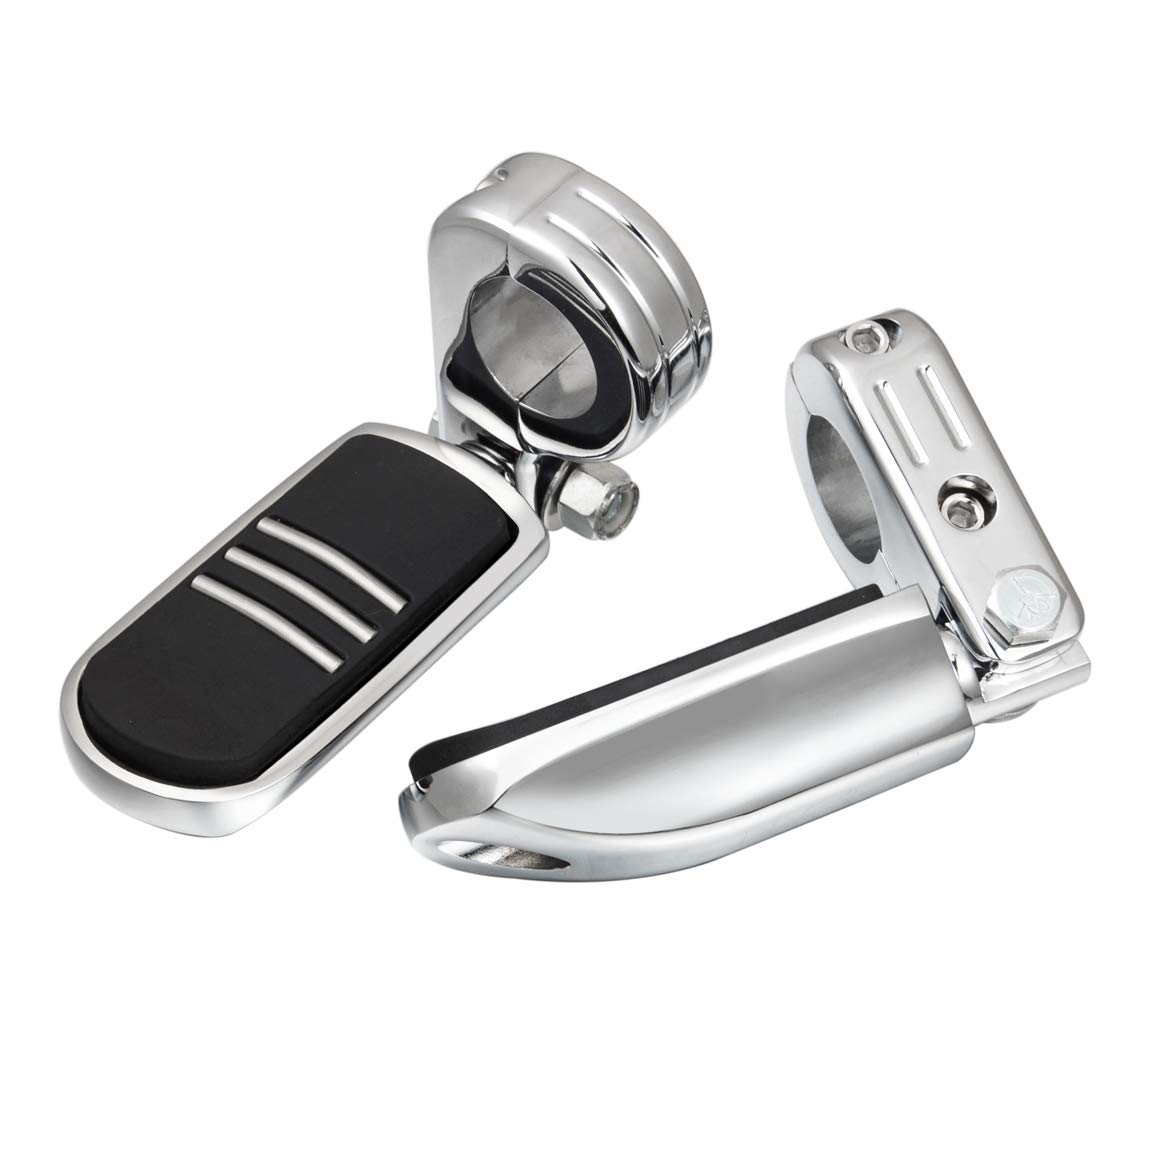 """PBYMT 1.25/"""" 32mm Engine Guard Highway Foot Pegs Footrest Compatible for Harley Softail Dyna Touring Electra Glide Street Glide Road King 1984-2020 Chrome"""